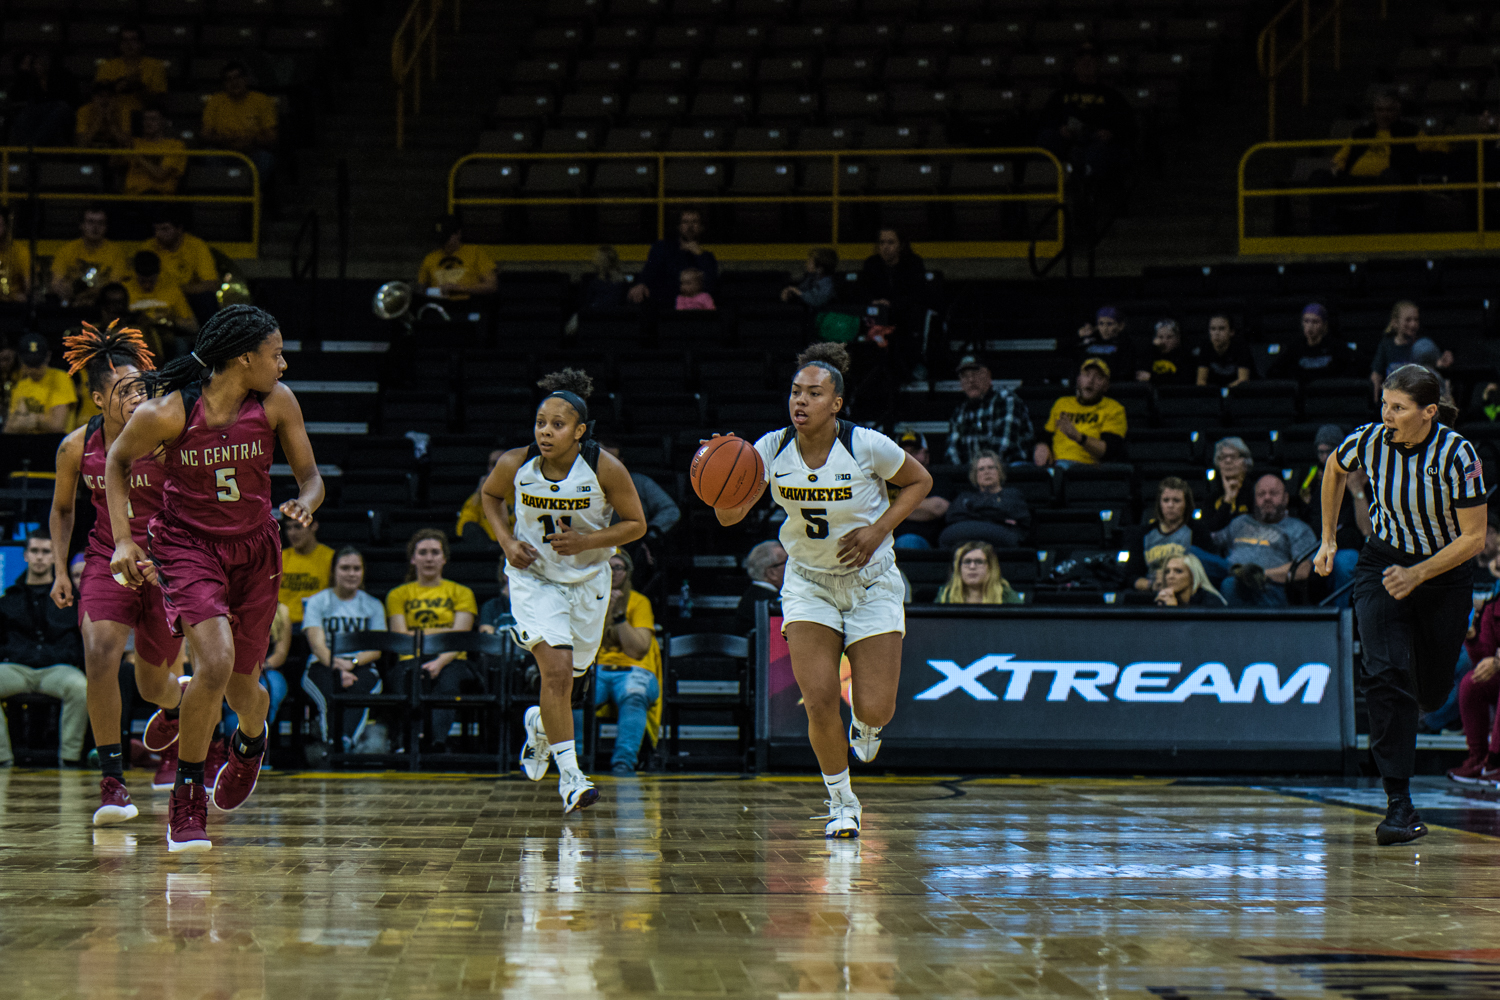 Iowa+guard+Alexis+Sullivan+runs+with+the+ball+during+a+women%27s+basketball+game+between+Iowa+and+North+Carolina+Central+at+Carver-Hawkeye+Arena+on+Saturday%2C+Nov.+17%2C+2018.+The+Hawkeyes+devastated+the+visiting+Eagles%2C+106-39.+